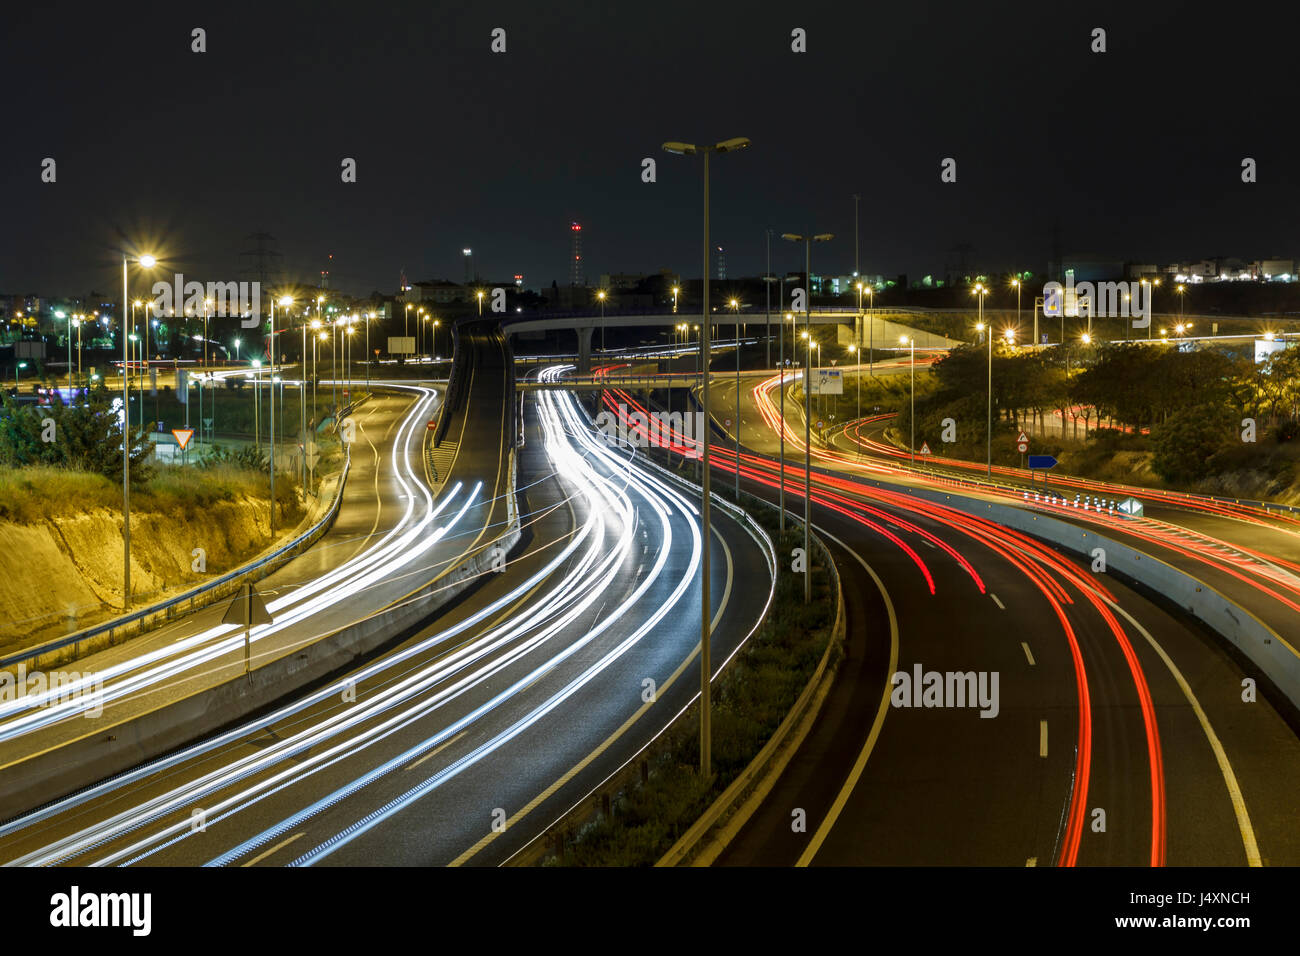 Long exposure shot of highway at night, with cars driving in the road - Stock Image